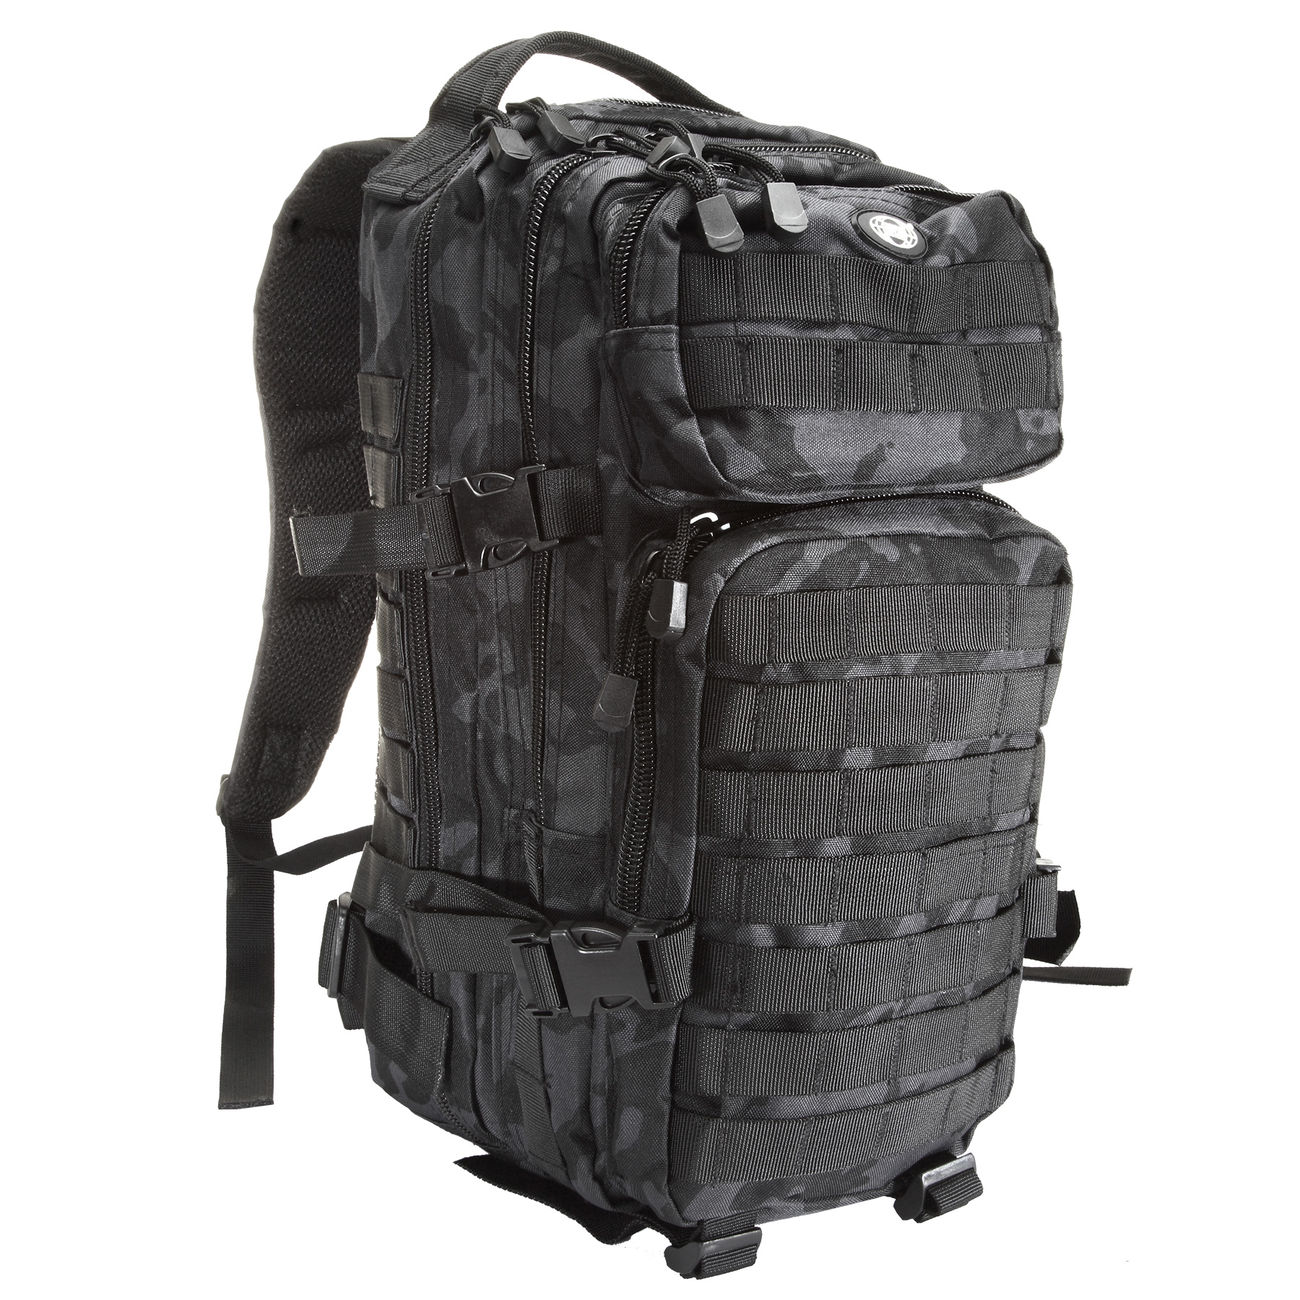 MFH US Rucksack Assault I night camo 0